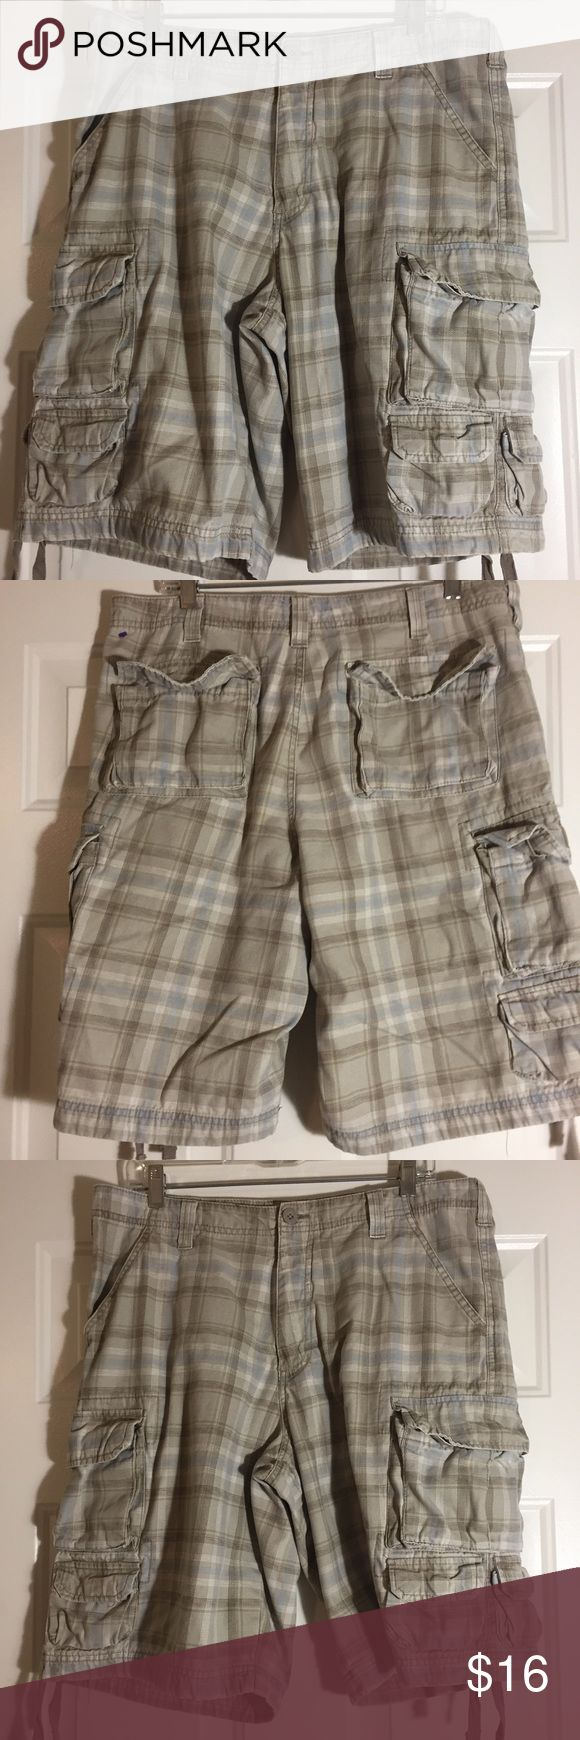 MEN'S LEE WRANGLER PLAID CARGO SHORTS SZ 34 MEN'S LEE WRANGLER PLAID CARGO SHORTS SZ 34.  These are in good pre-owned condition, lots of wear left. Lee Dungarees Shorts Cargo